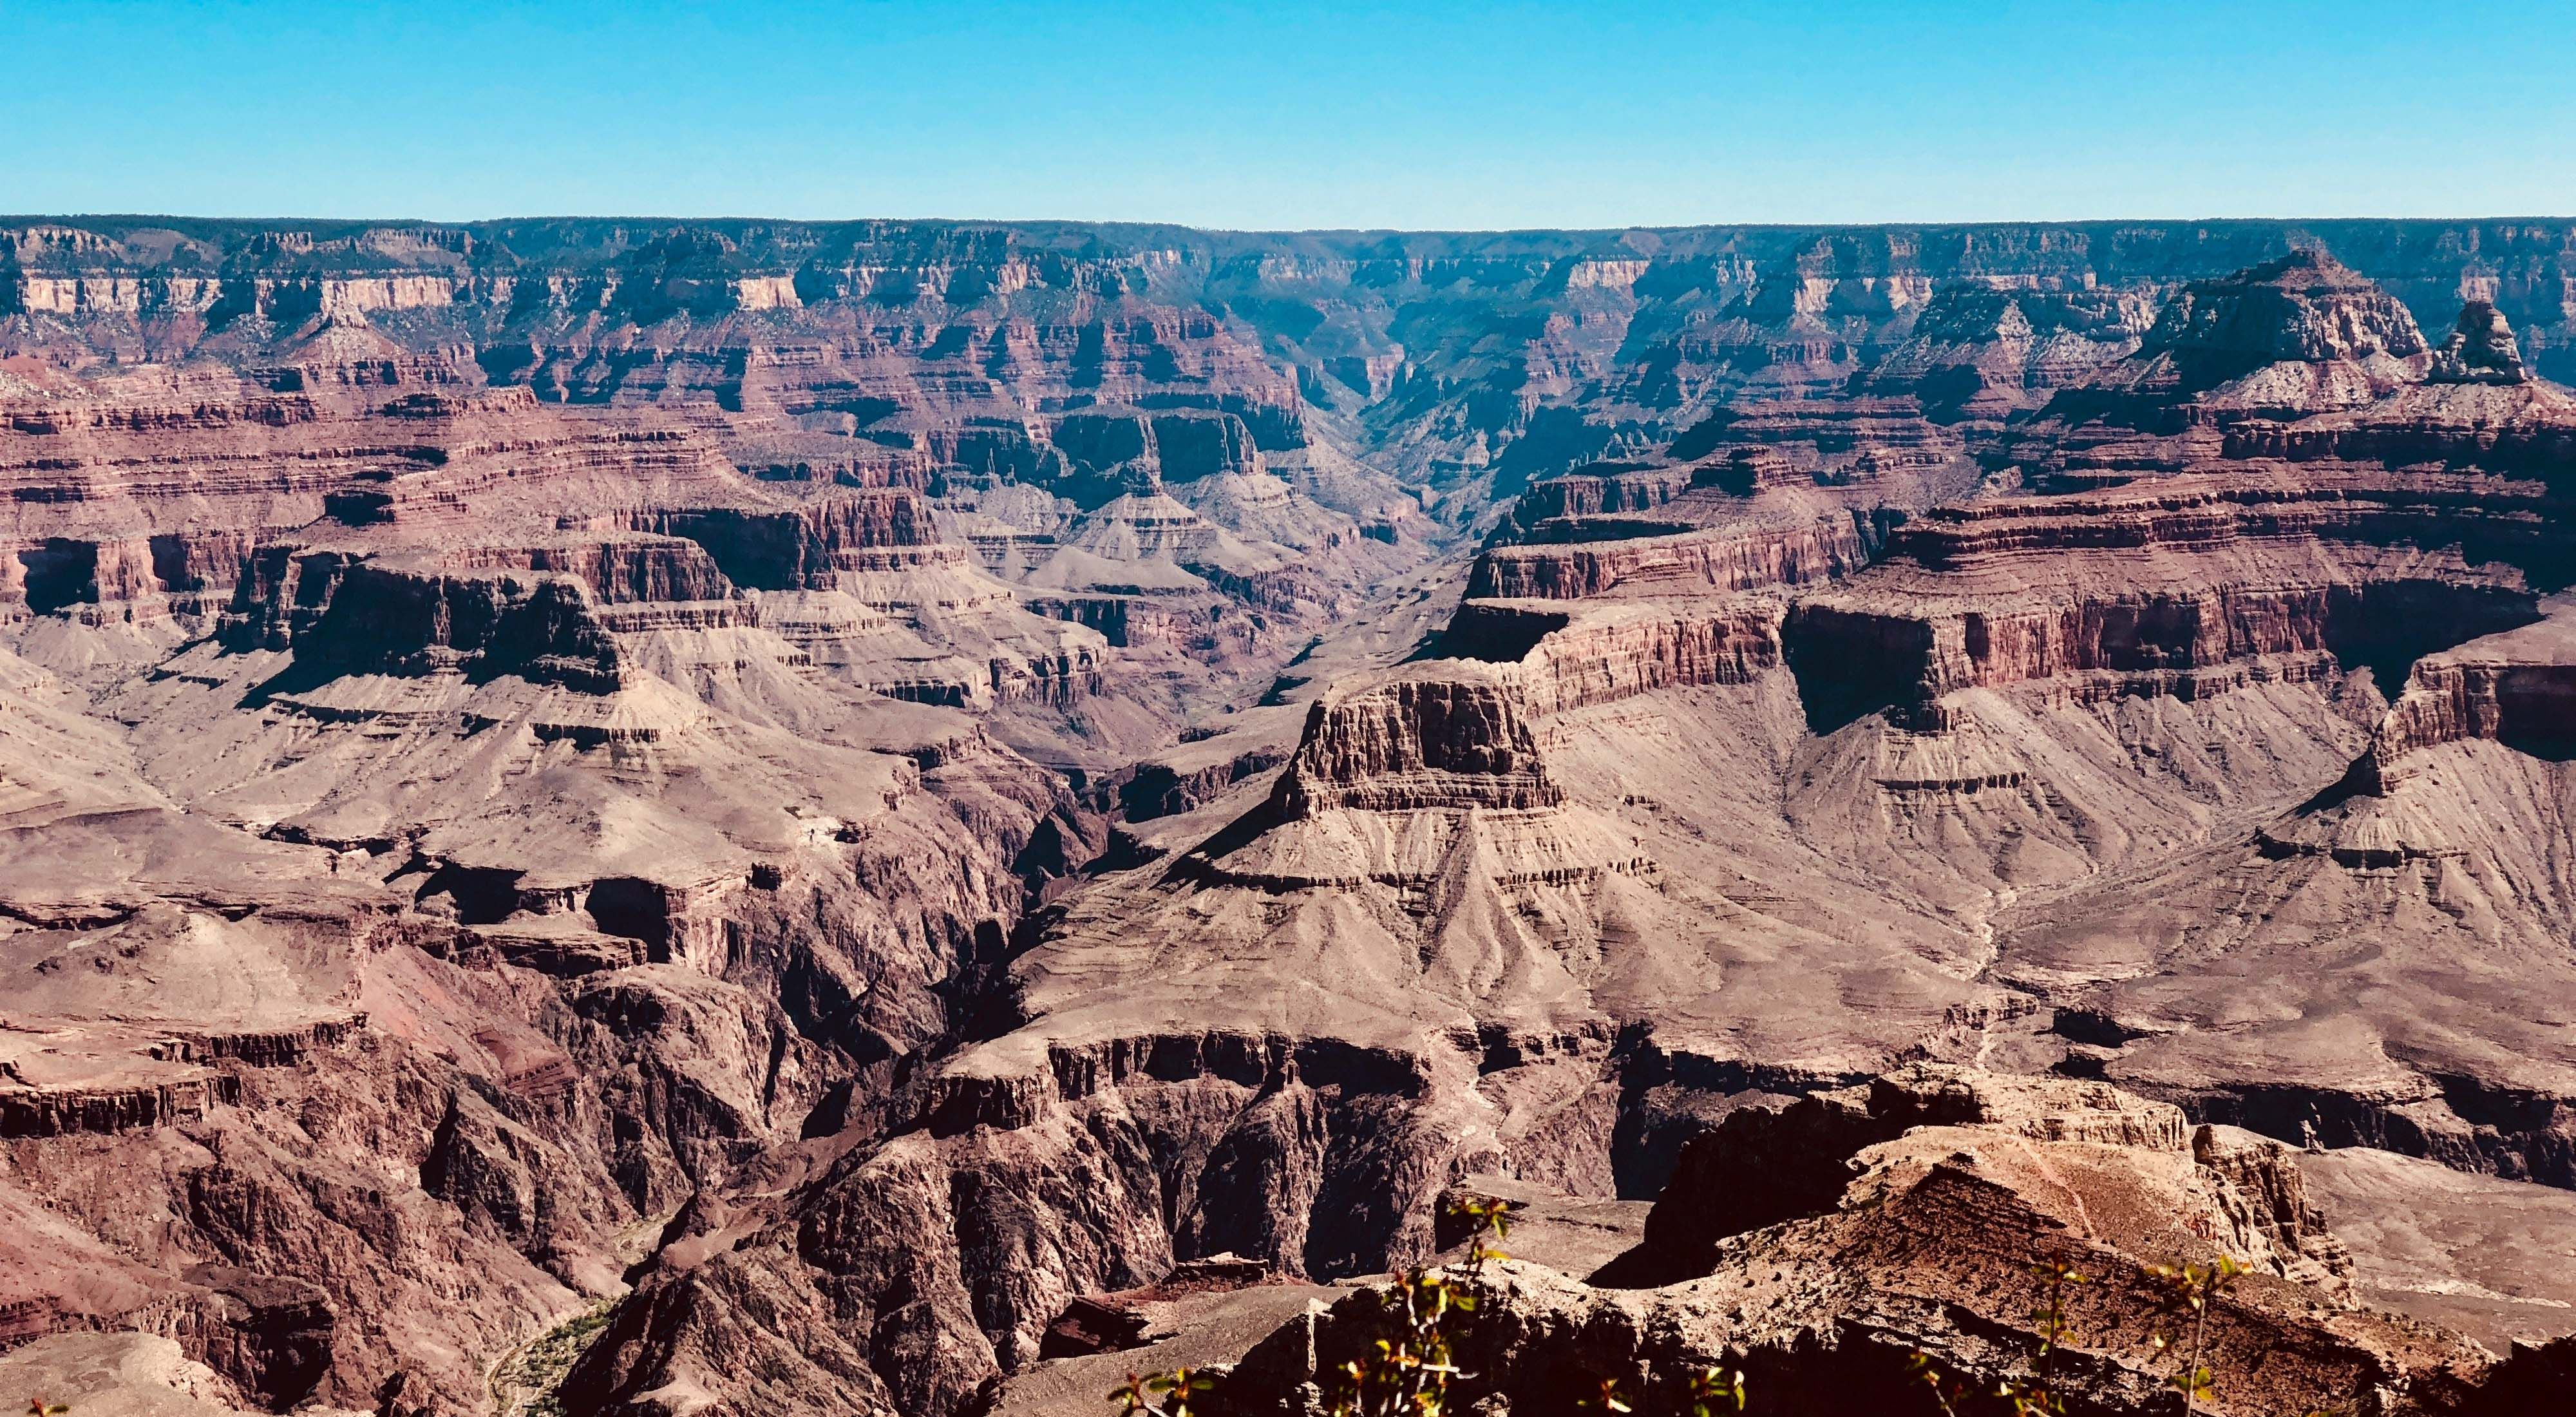 View from the rim of the grand canyon, with rock terraces as far as the eye can see.